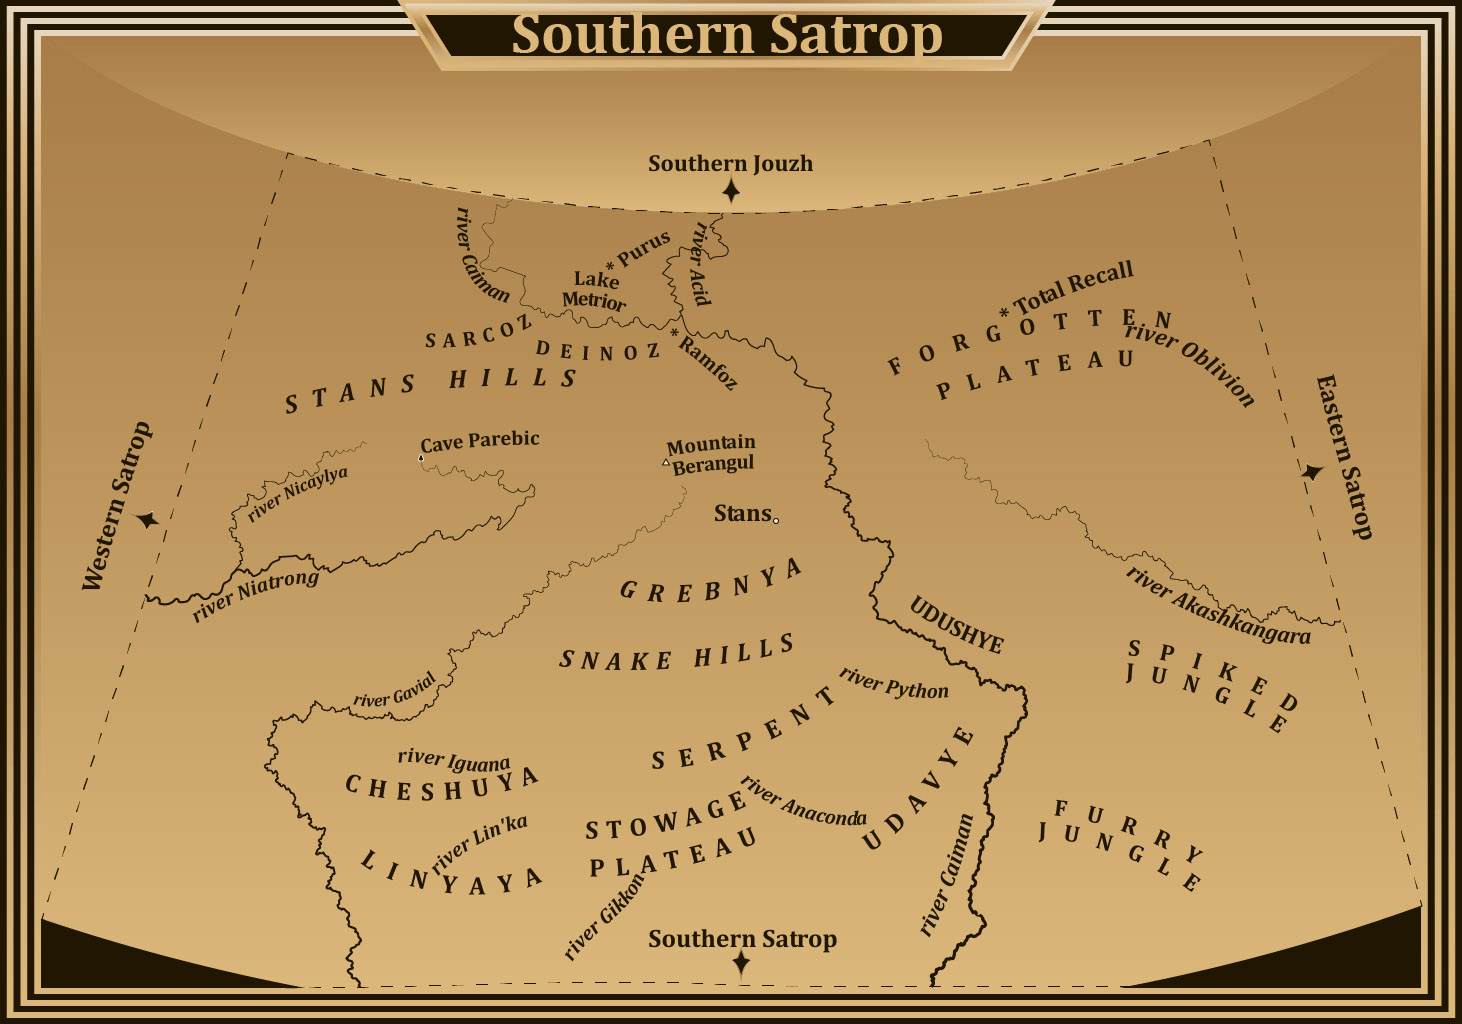 South Satrop Is The Southern Part Of Szatrop Third Circle World Tears Which Lies Between Western Sutrop Juzh East And